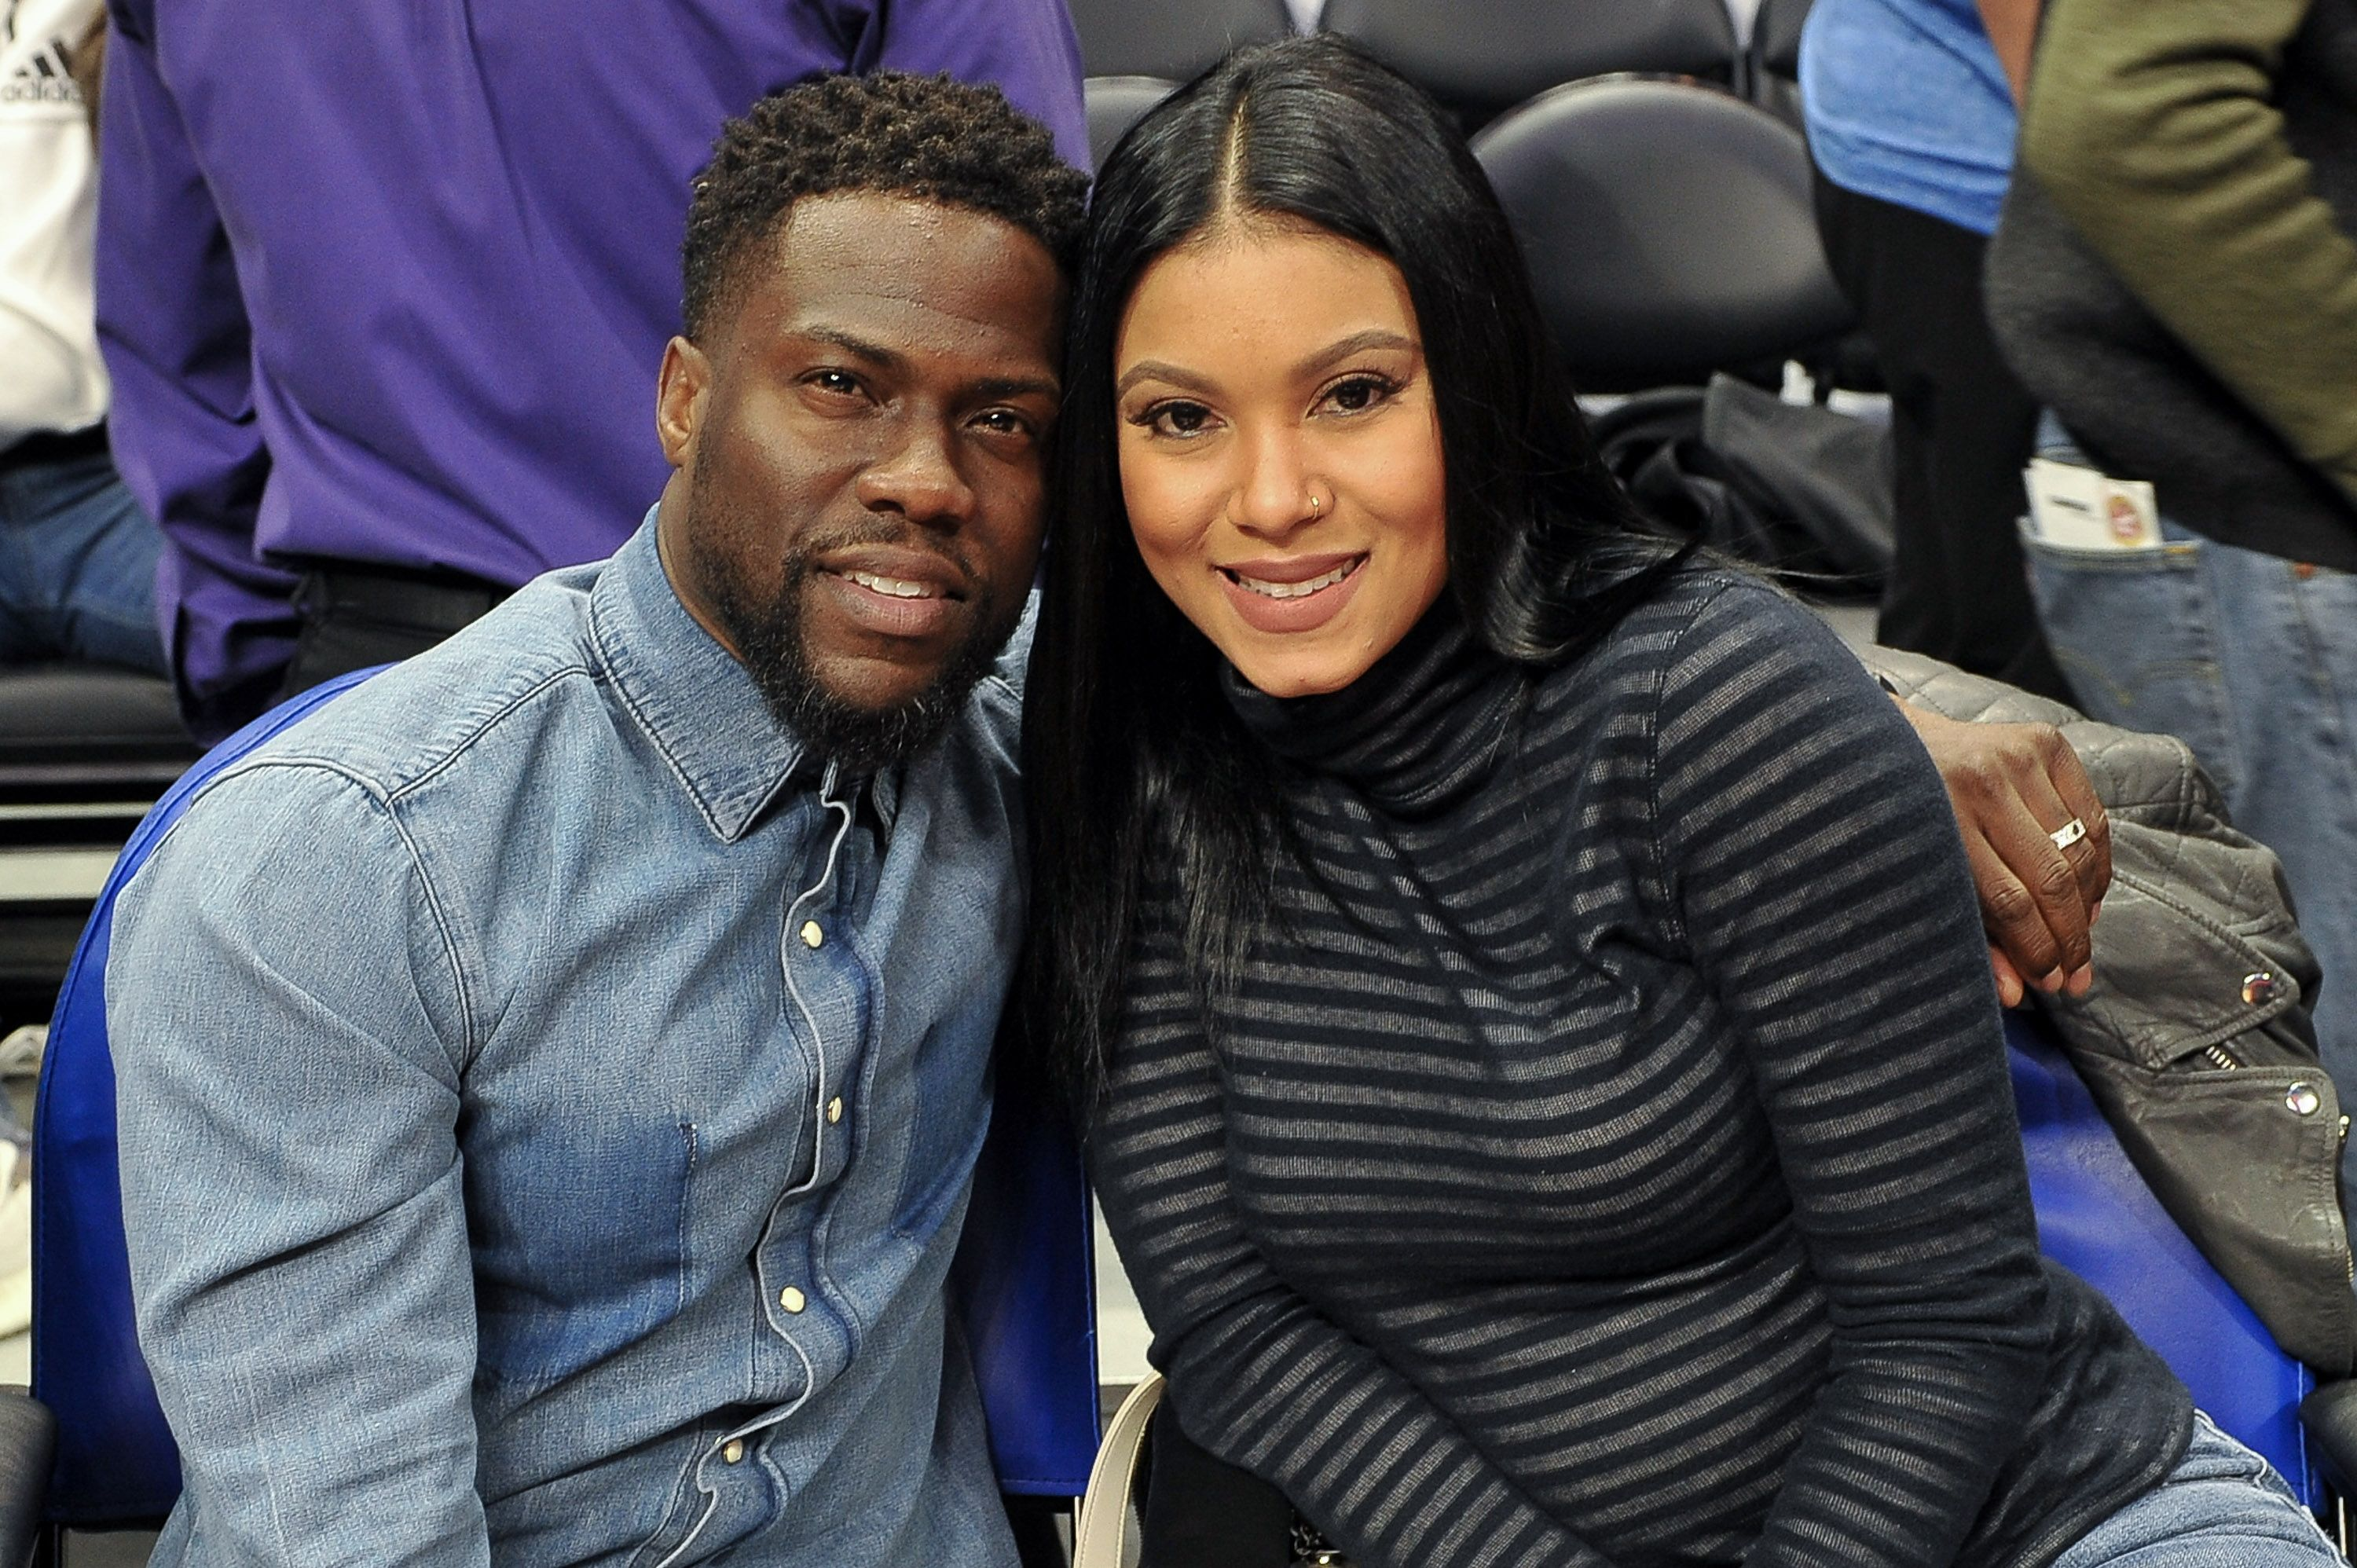 Actor Kevin Hart and Eniko Parrish at a basketball game between the Los Angeles Clippers and the Minnesota Timberwolves at Staples Center in Los Angeles on January 22, 2018.   Photo: Getty Images